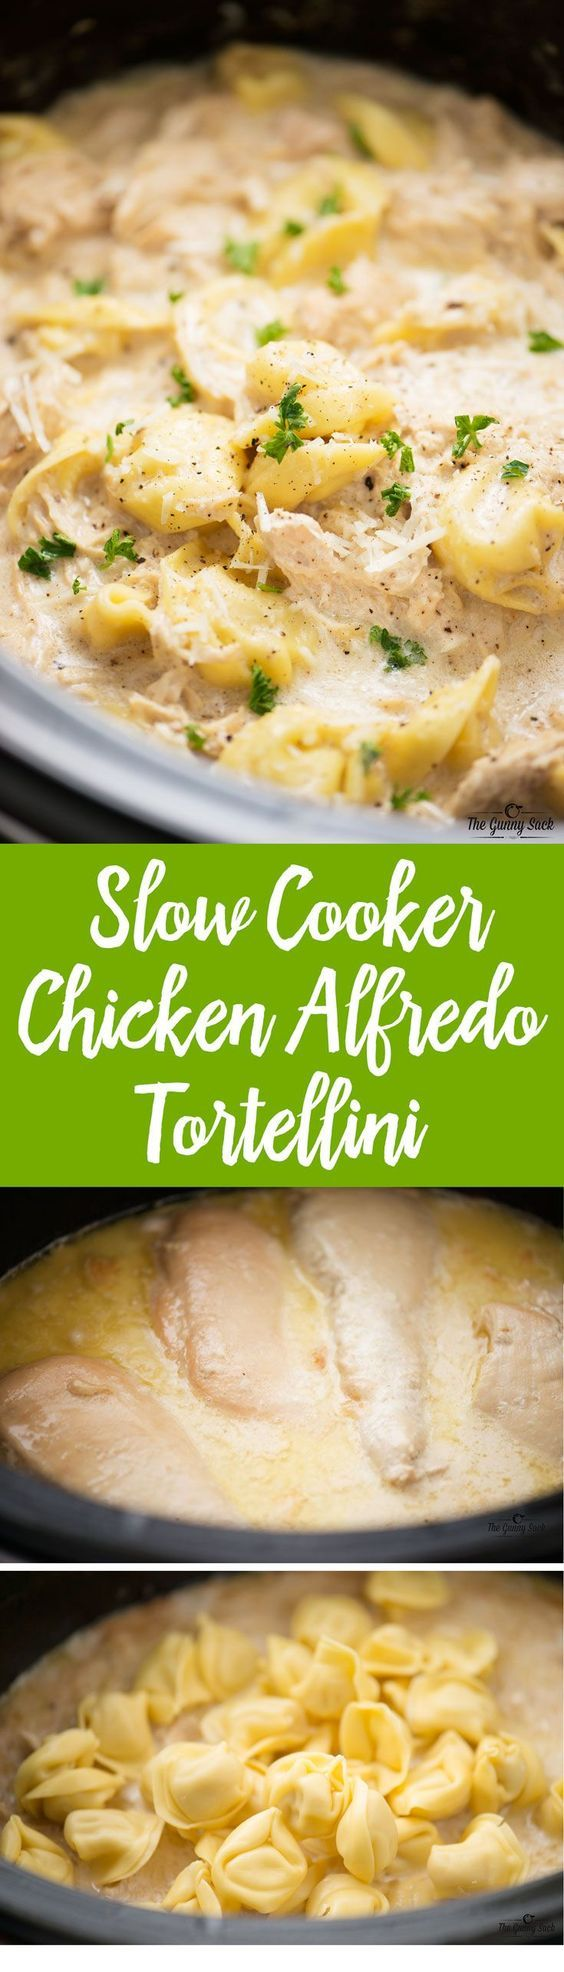 Tortellini is my son's favorite pasta and when you add alfredo he is OVER THE MOON!